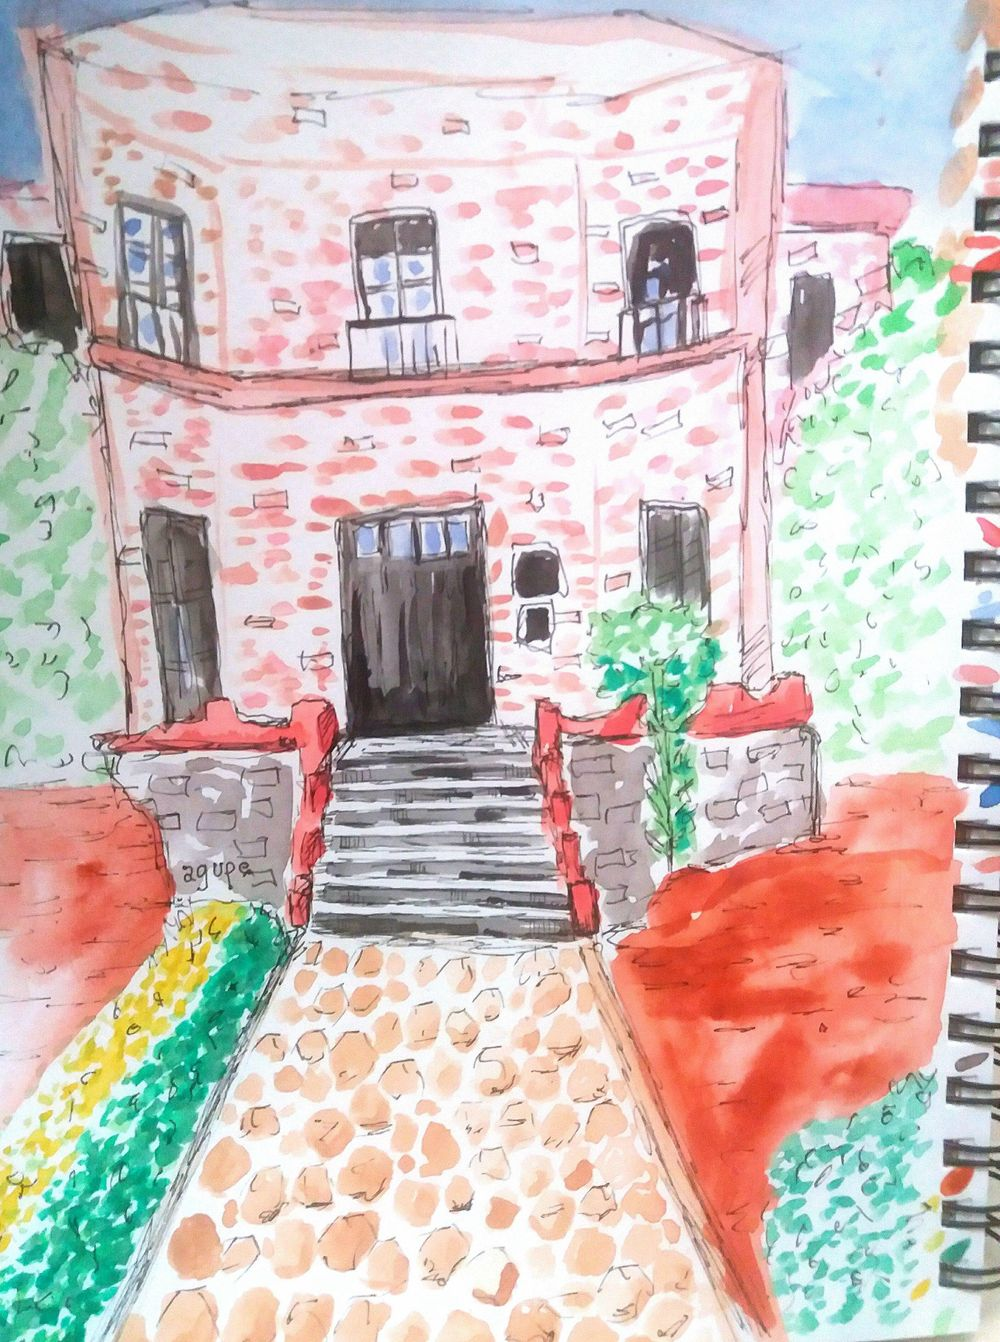 Watercolor Workshop - image 13 - student project